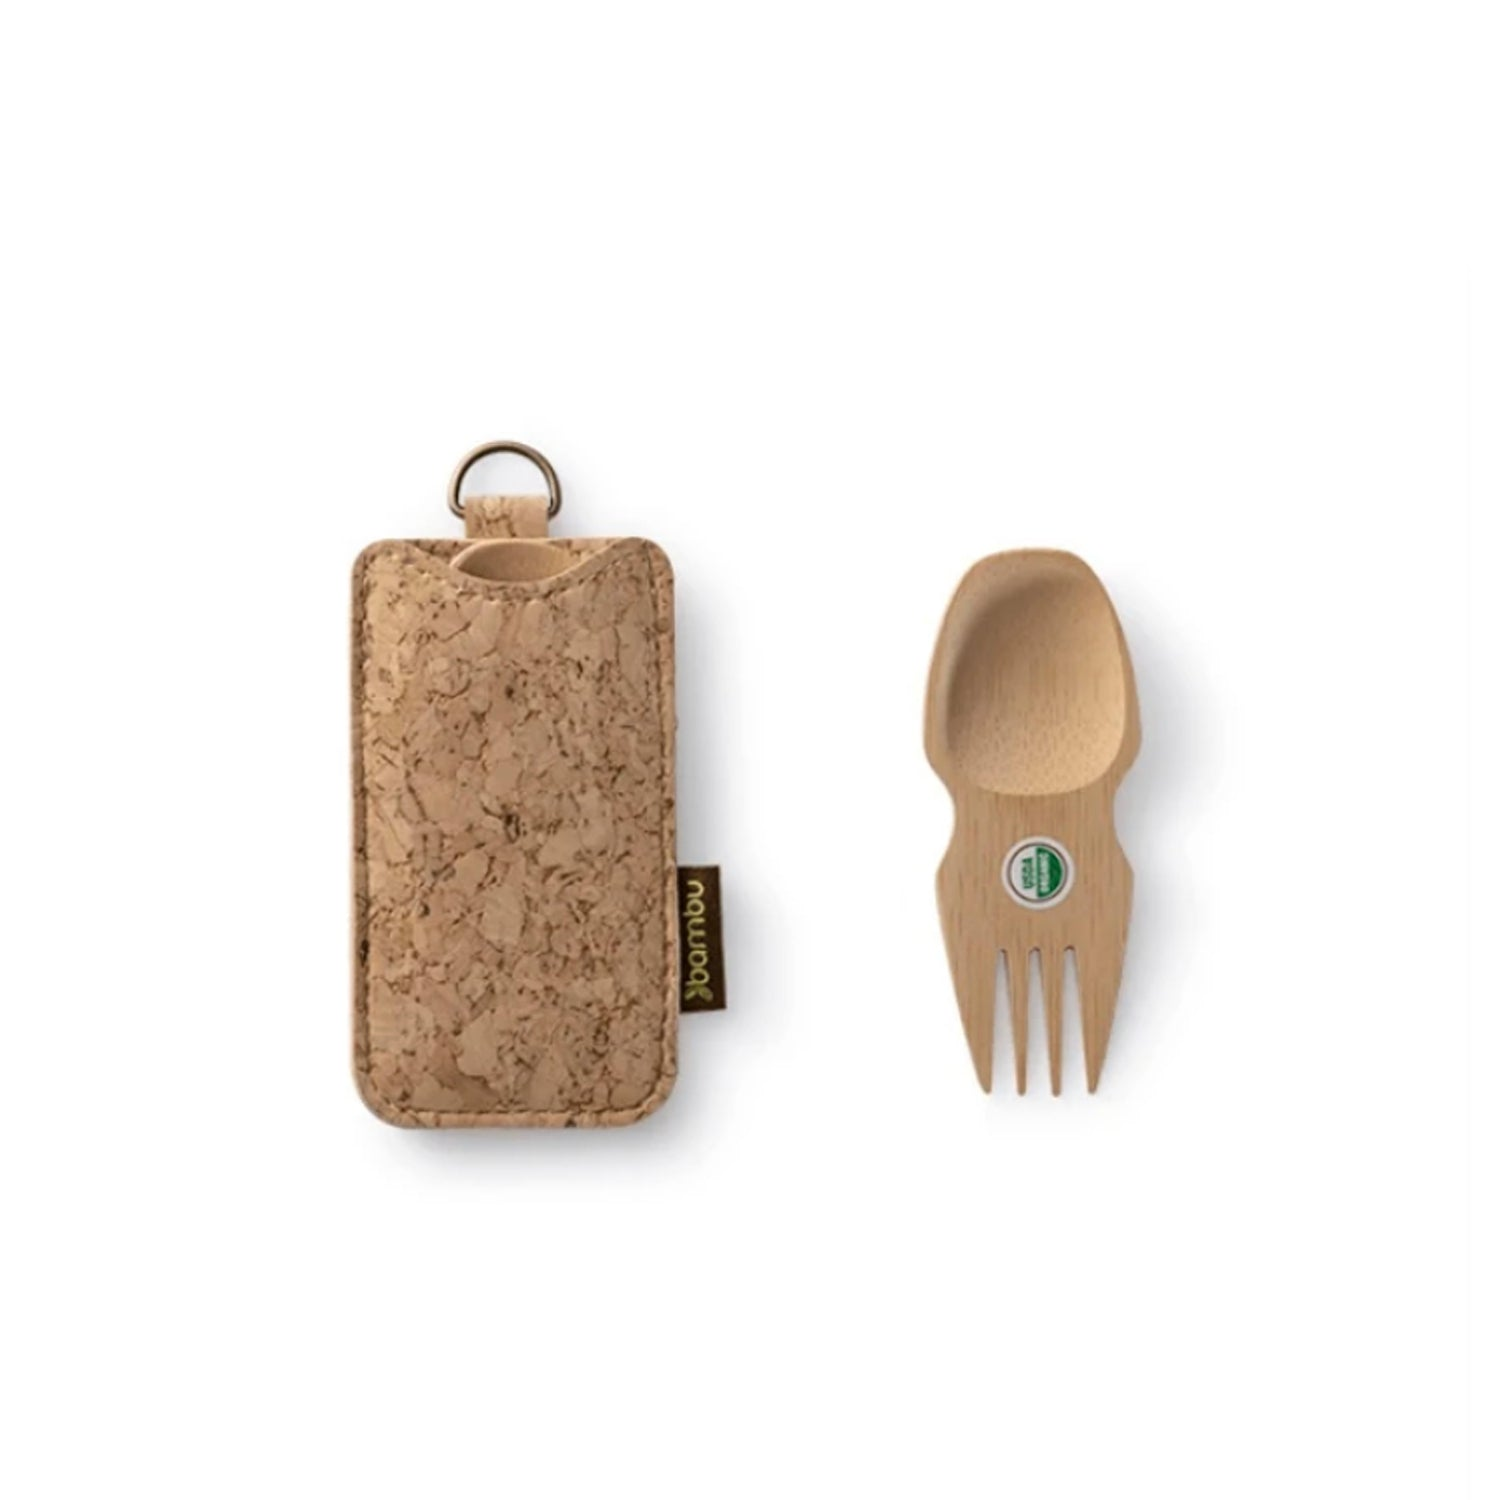 Spork & Cork travel set | bambu